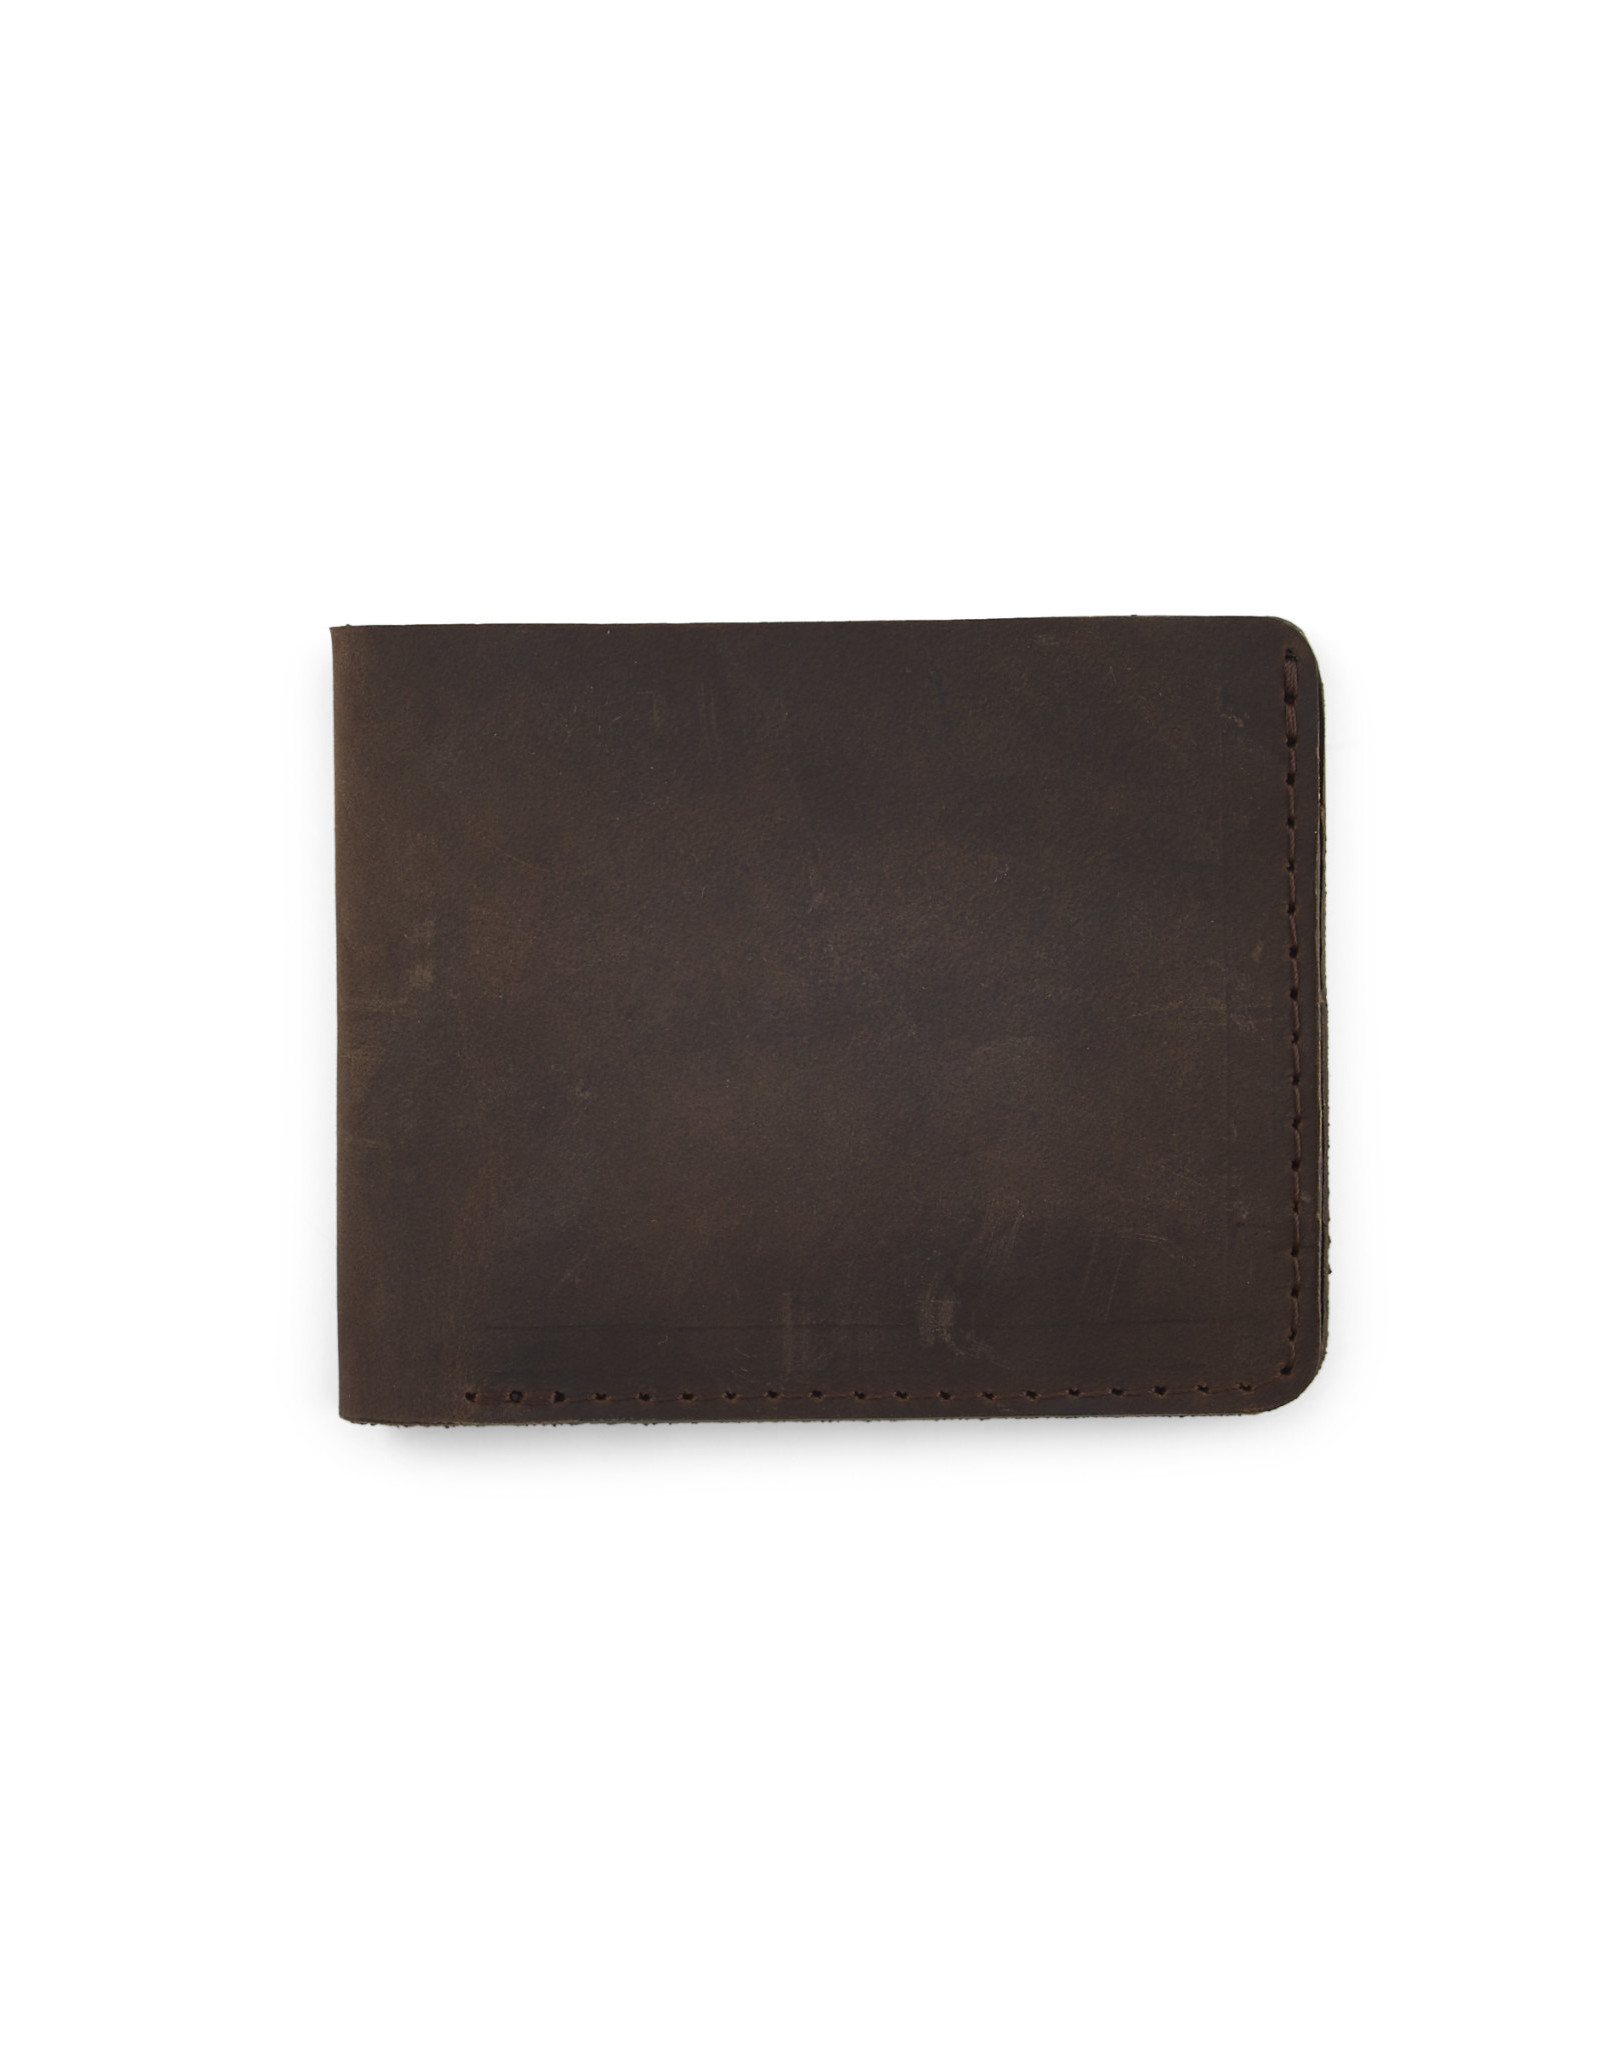 Rustico Knox Bifold Leather Wallet